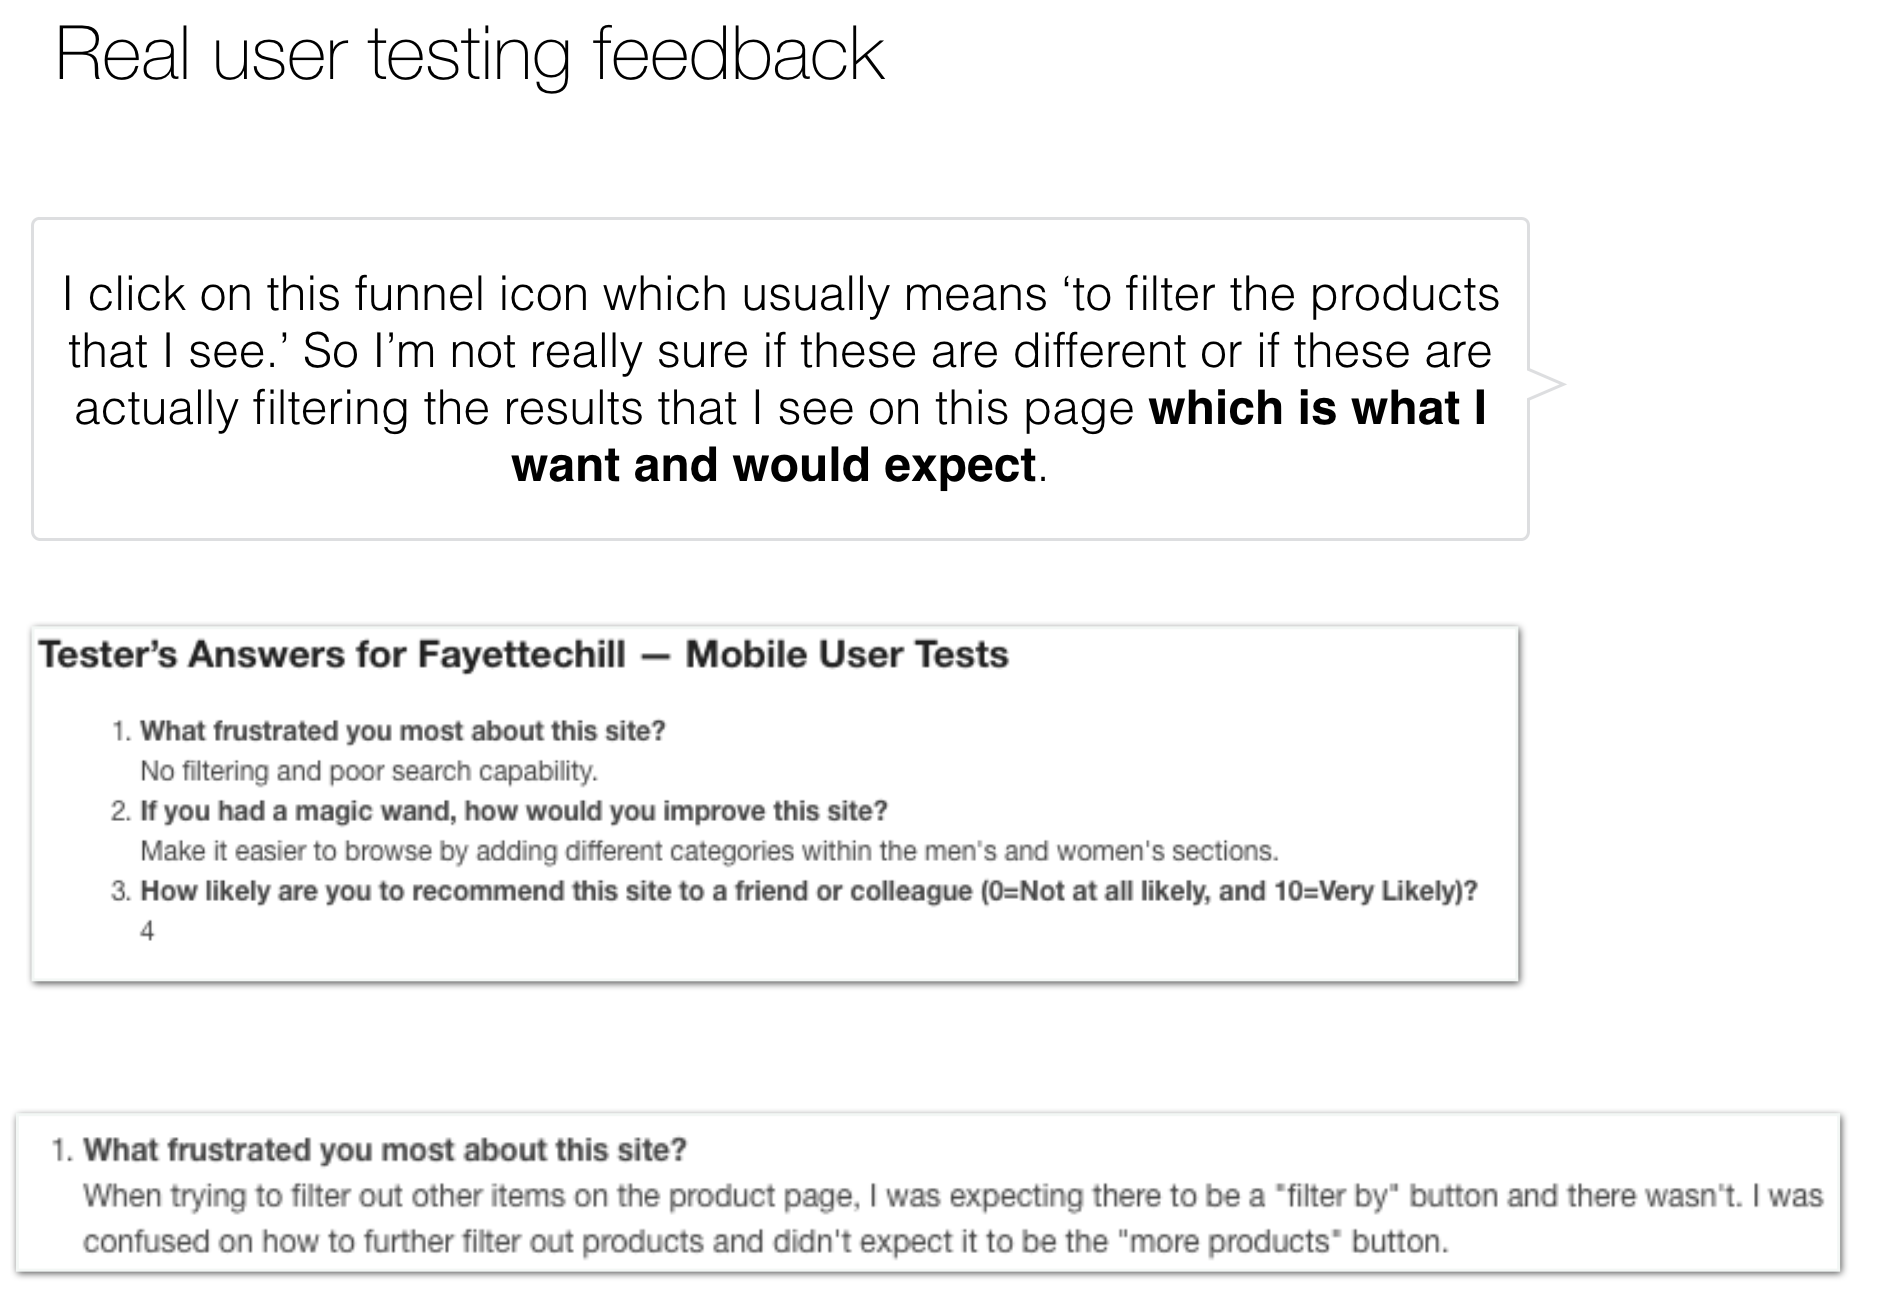 Real user testing feedback